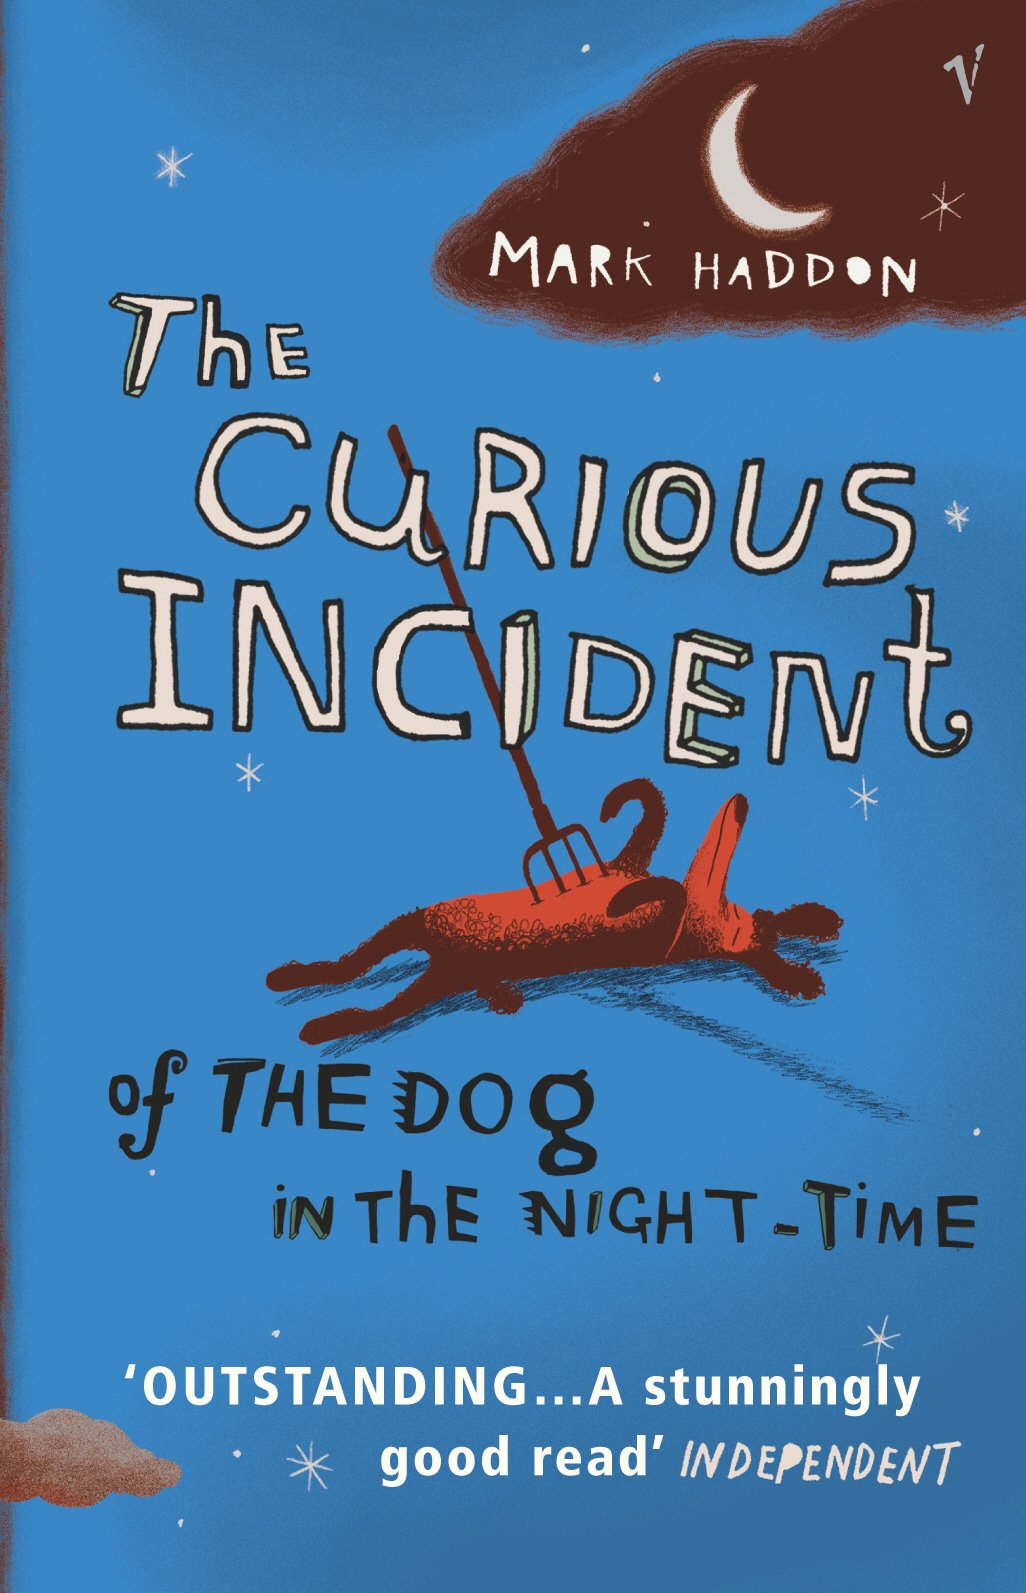 Amazon.fr - The Curious Incident of the Dog in the Night-time - Haddon, Mark - Livres